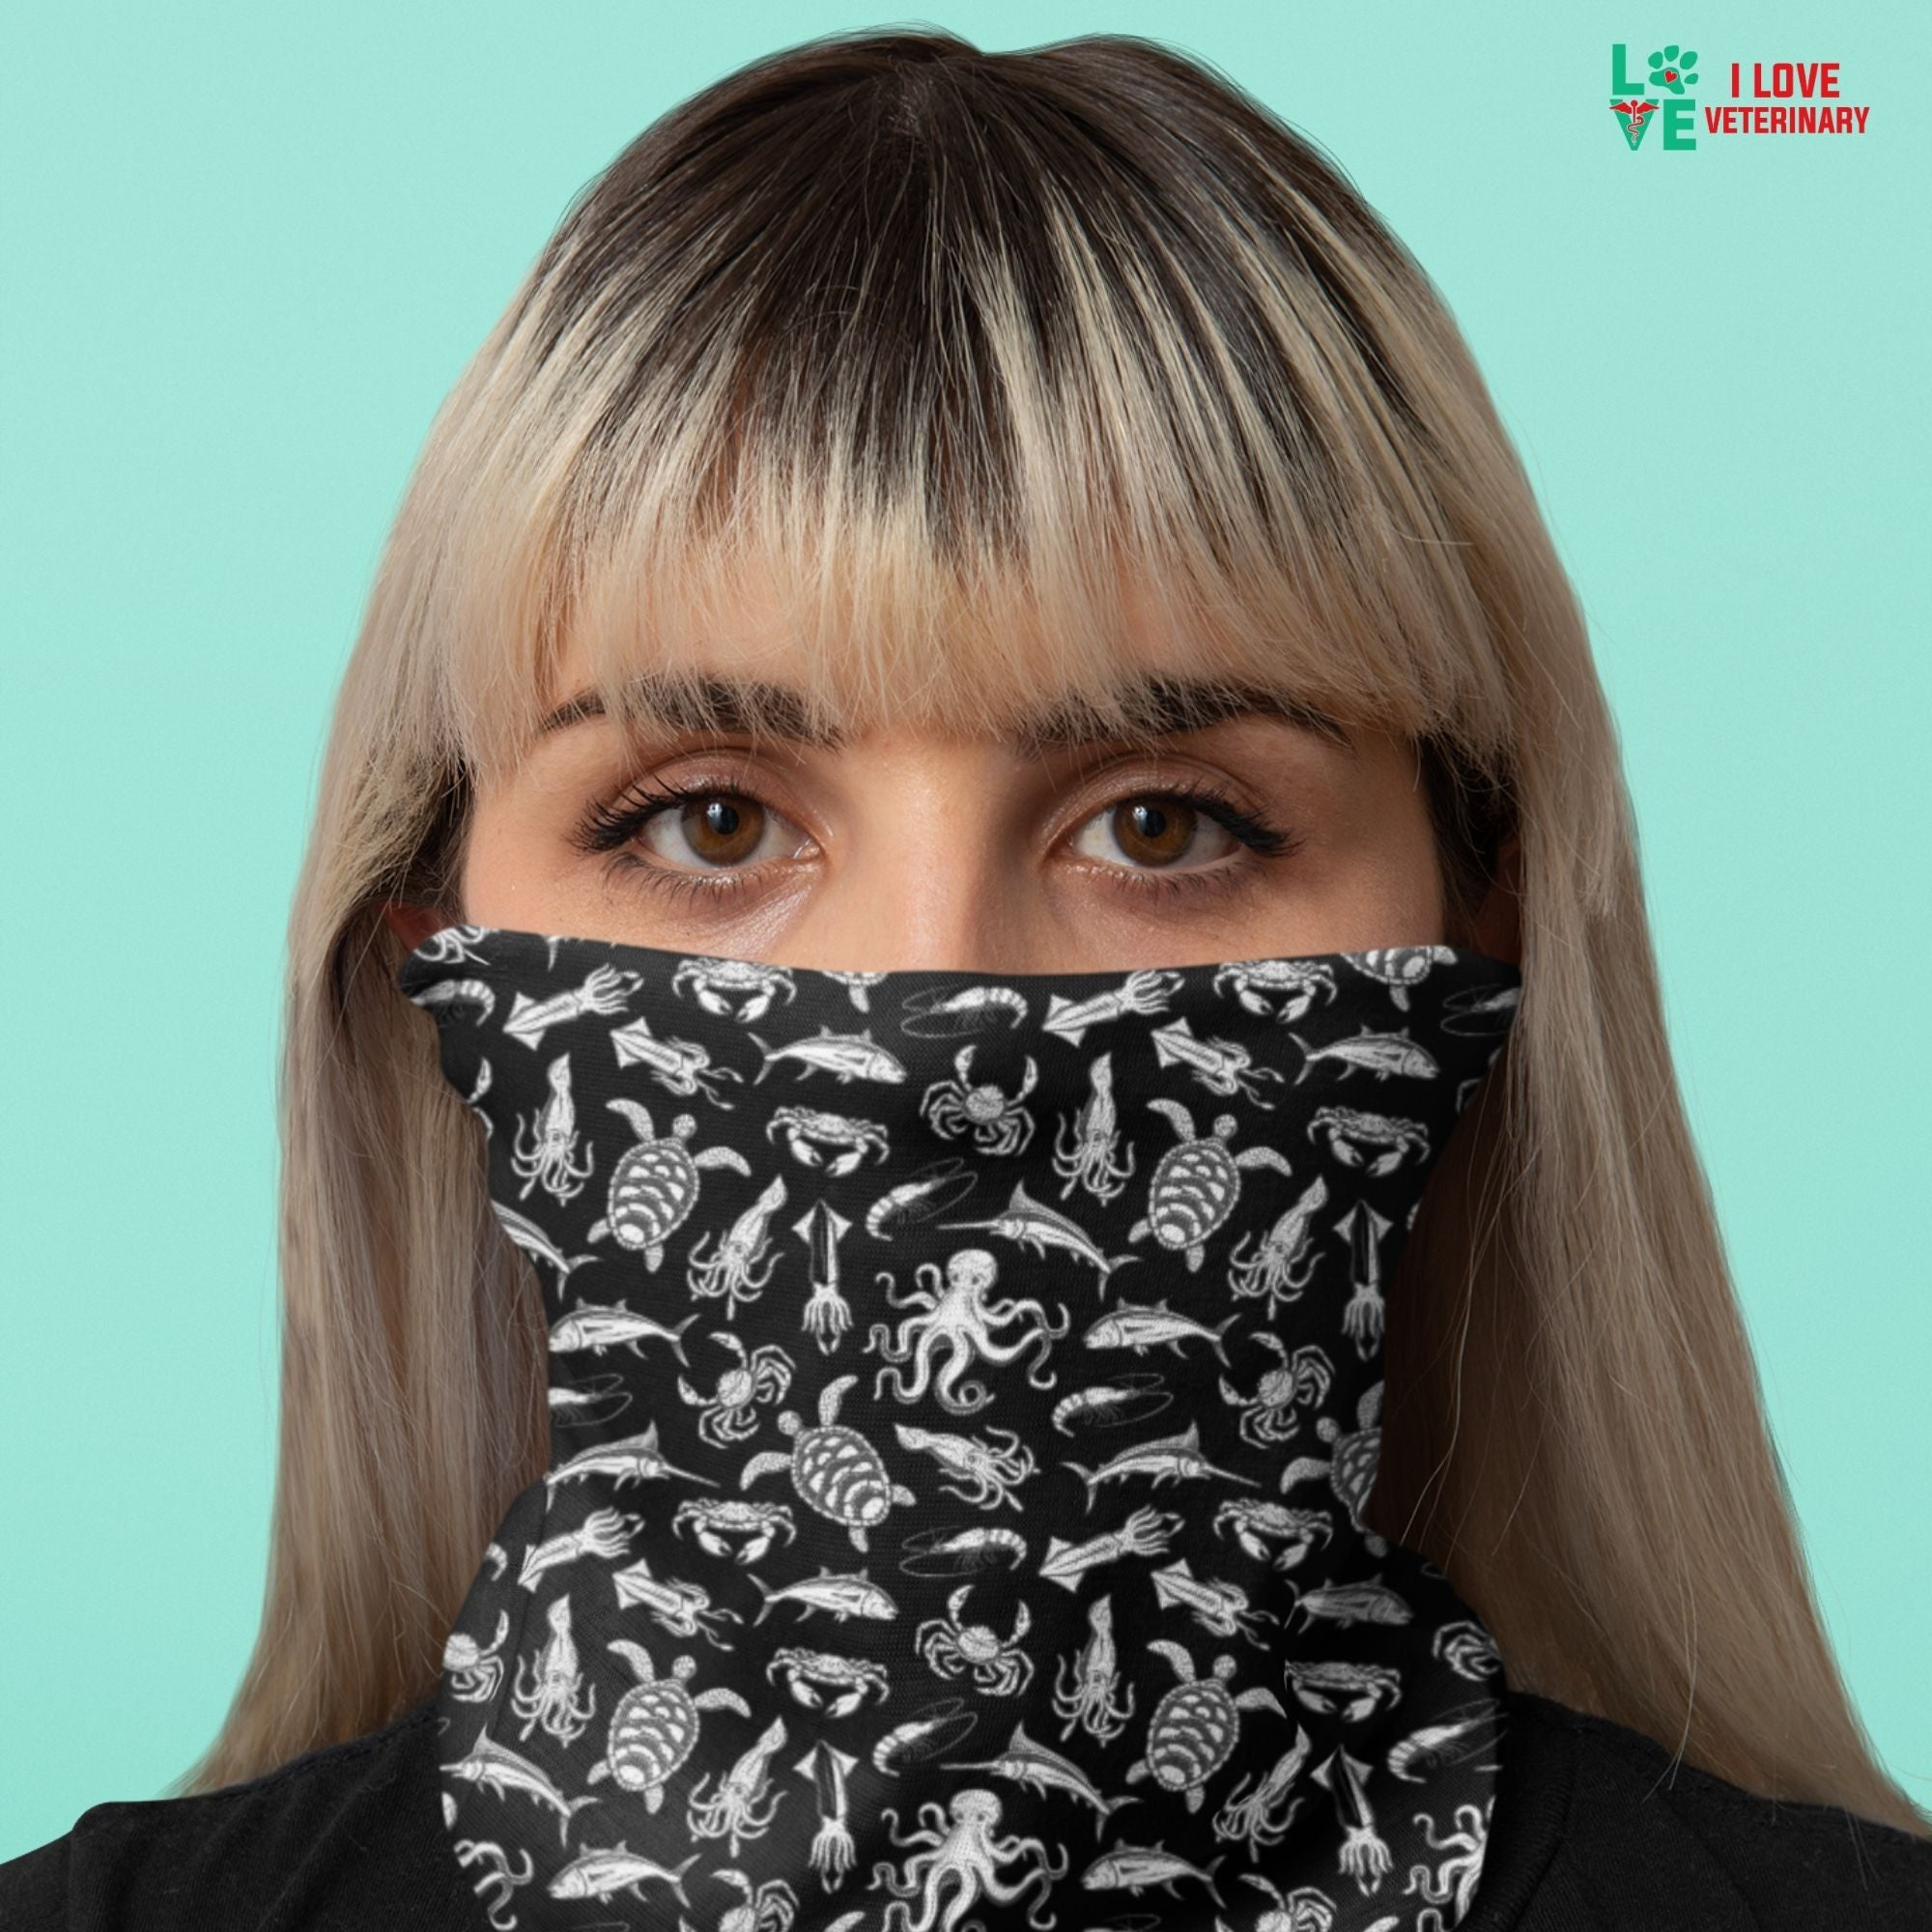 Sea world black pattern Sublimation Neck Gaiter-Accessories-I love Veterinary